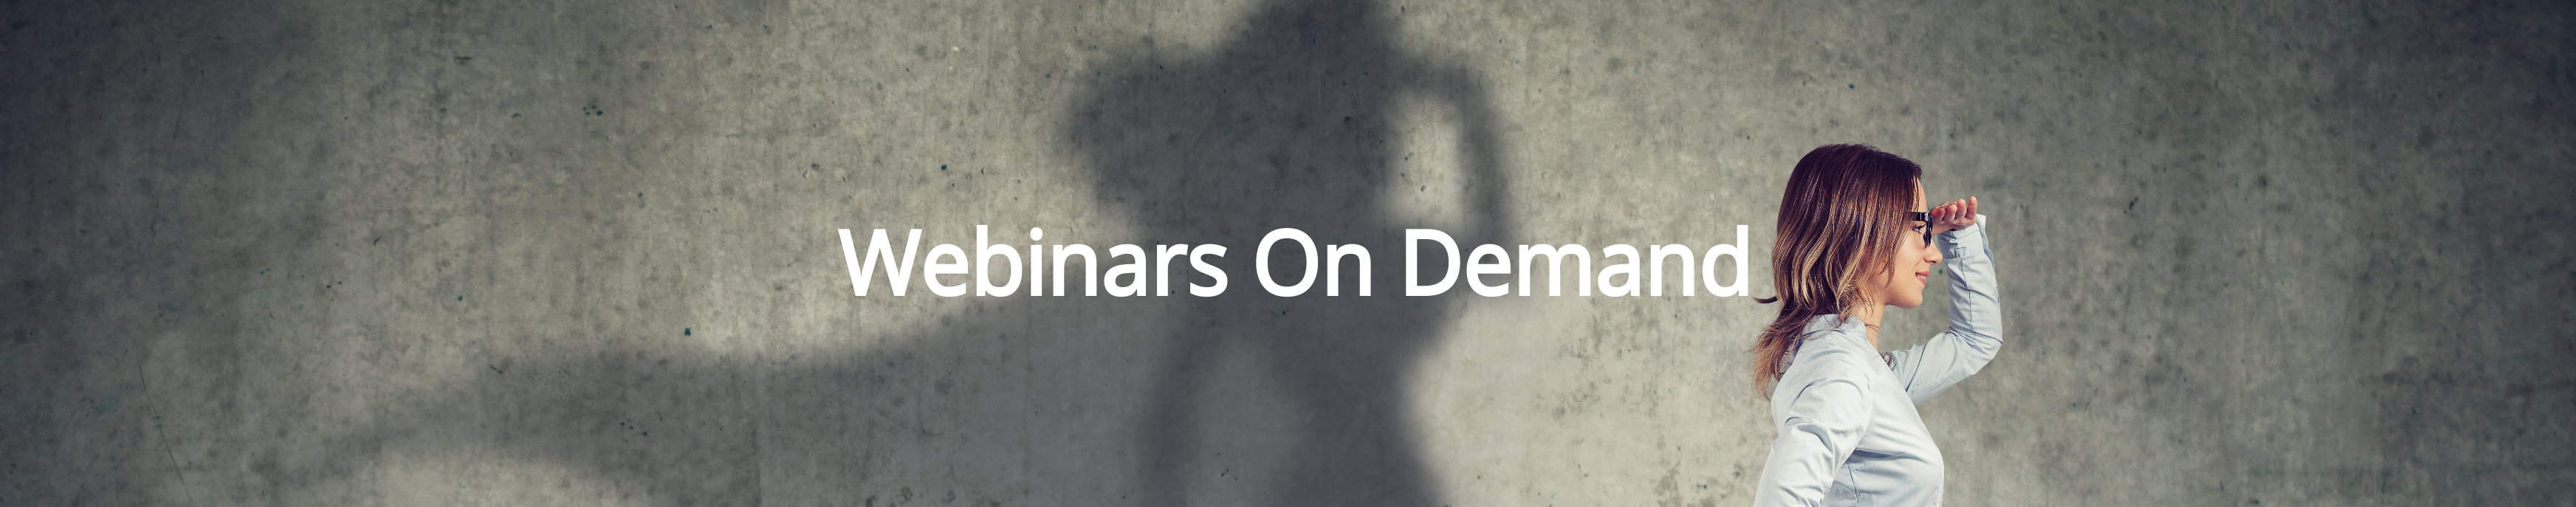 Past We've Got WIT Webinars – Available On Demand for Members